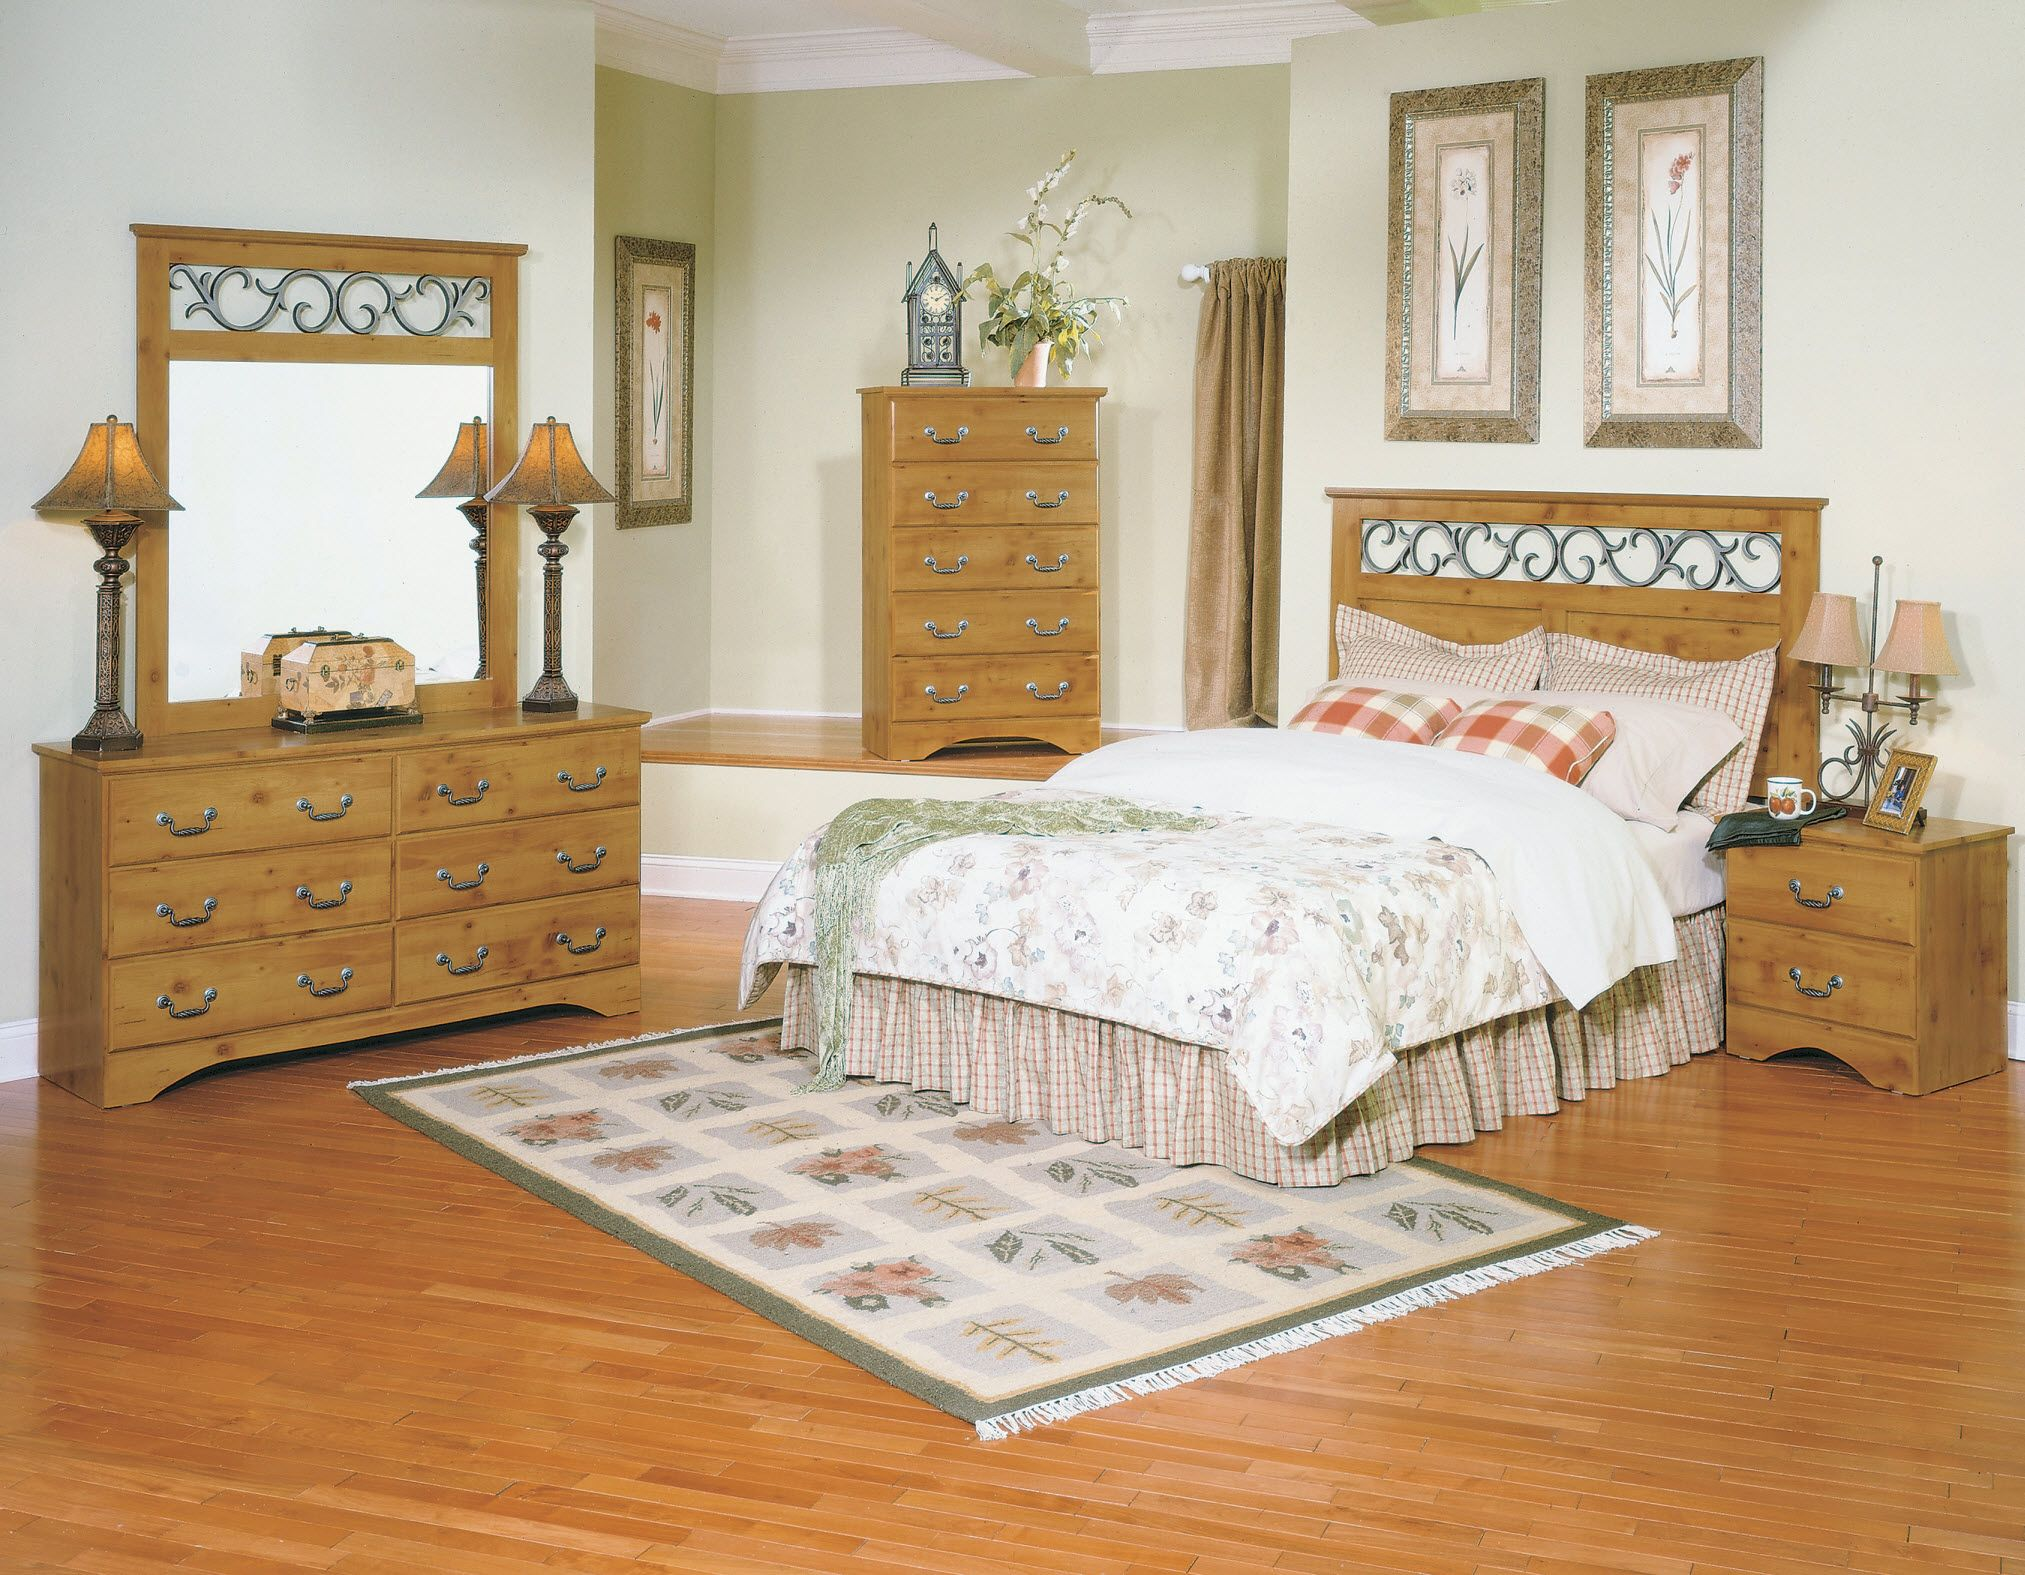 The Important Things When Selecting Pine Bedroom Furniture Set In 2020 Pine Bedroom Furniture Bedroom Furniture Sets Honey Pine Bedroom Furniture